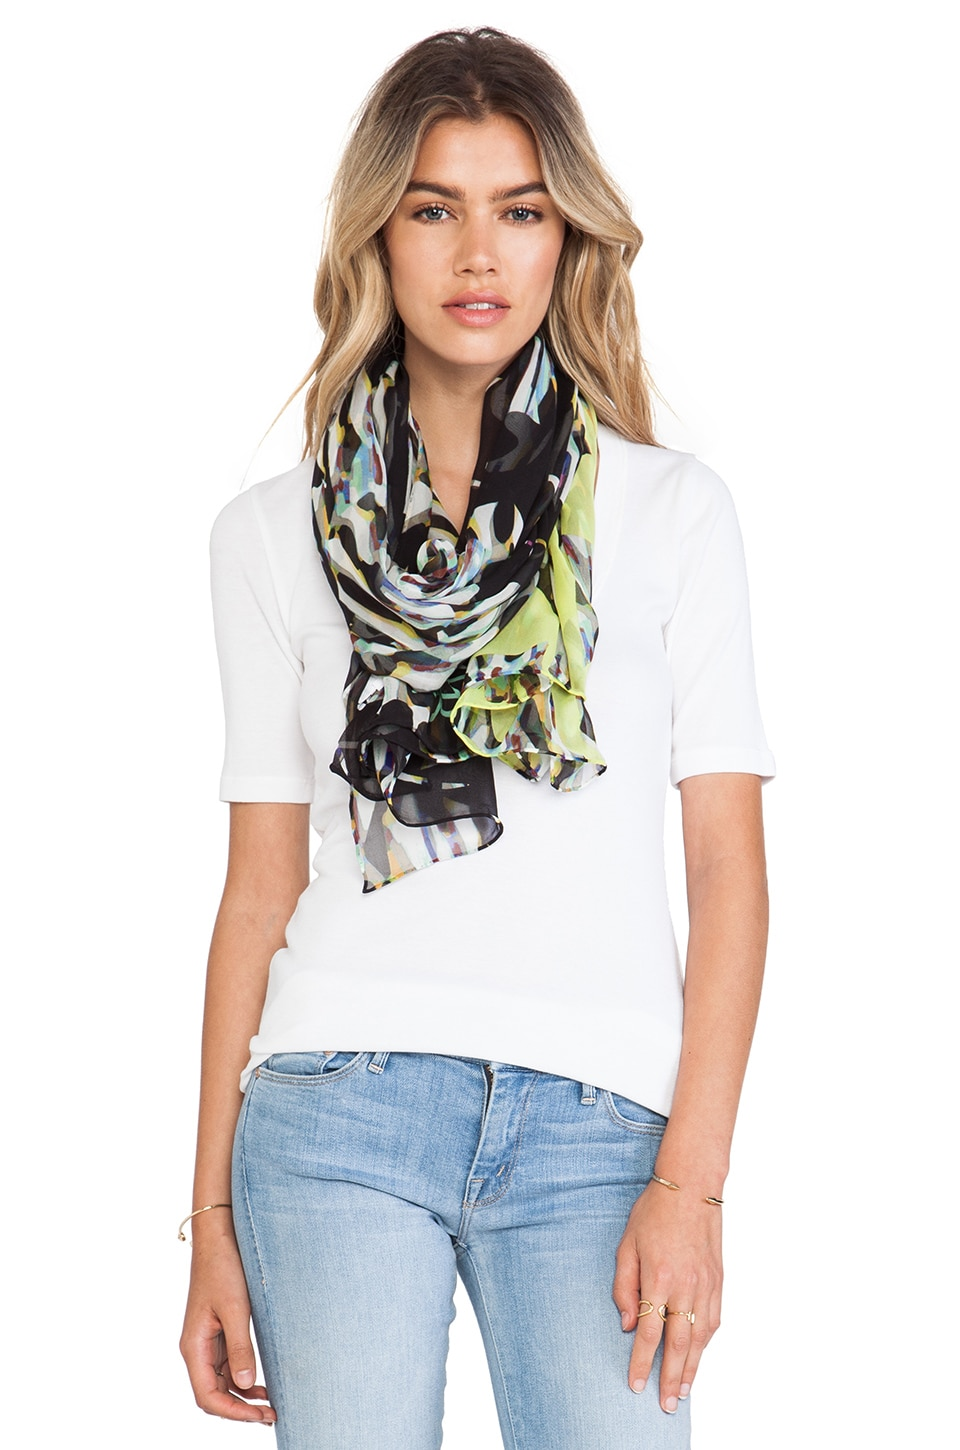 Diane von Furstenberg Washed Chiffon Scarf in Stained Glass Floral